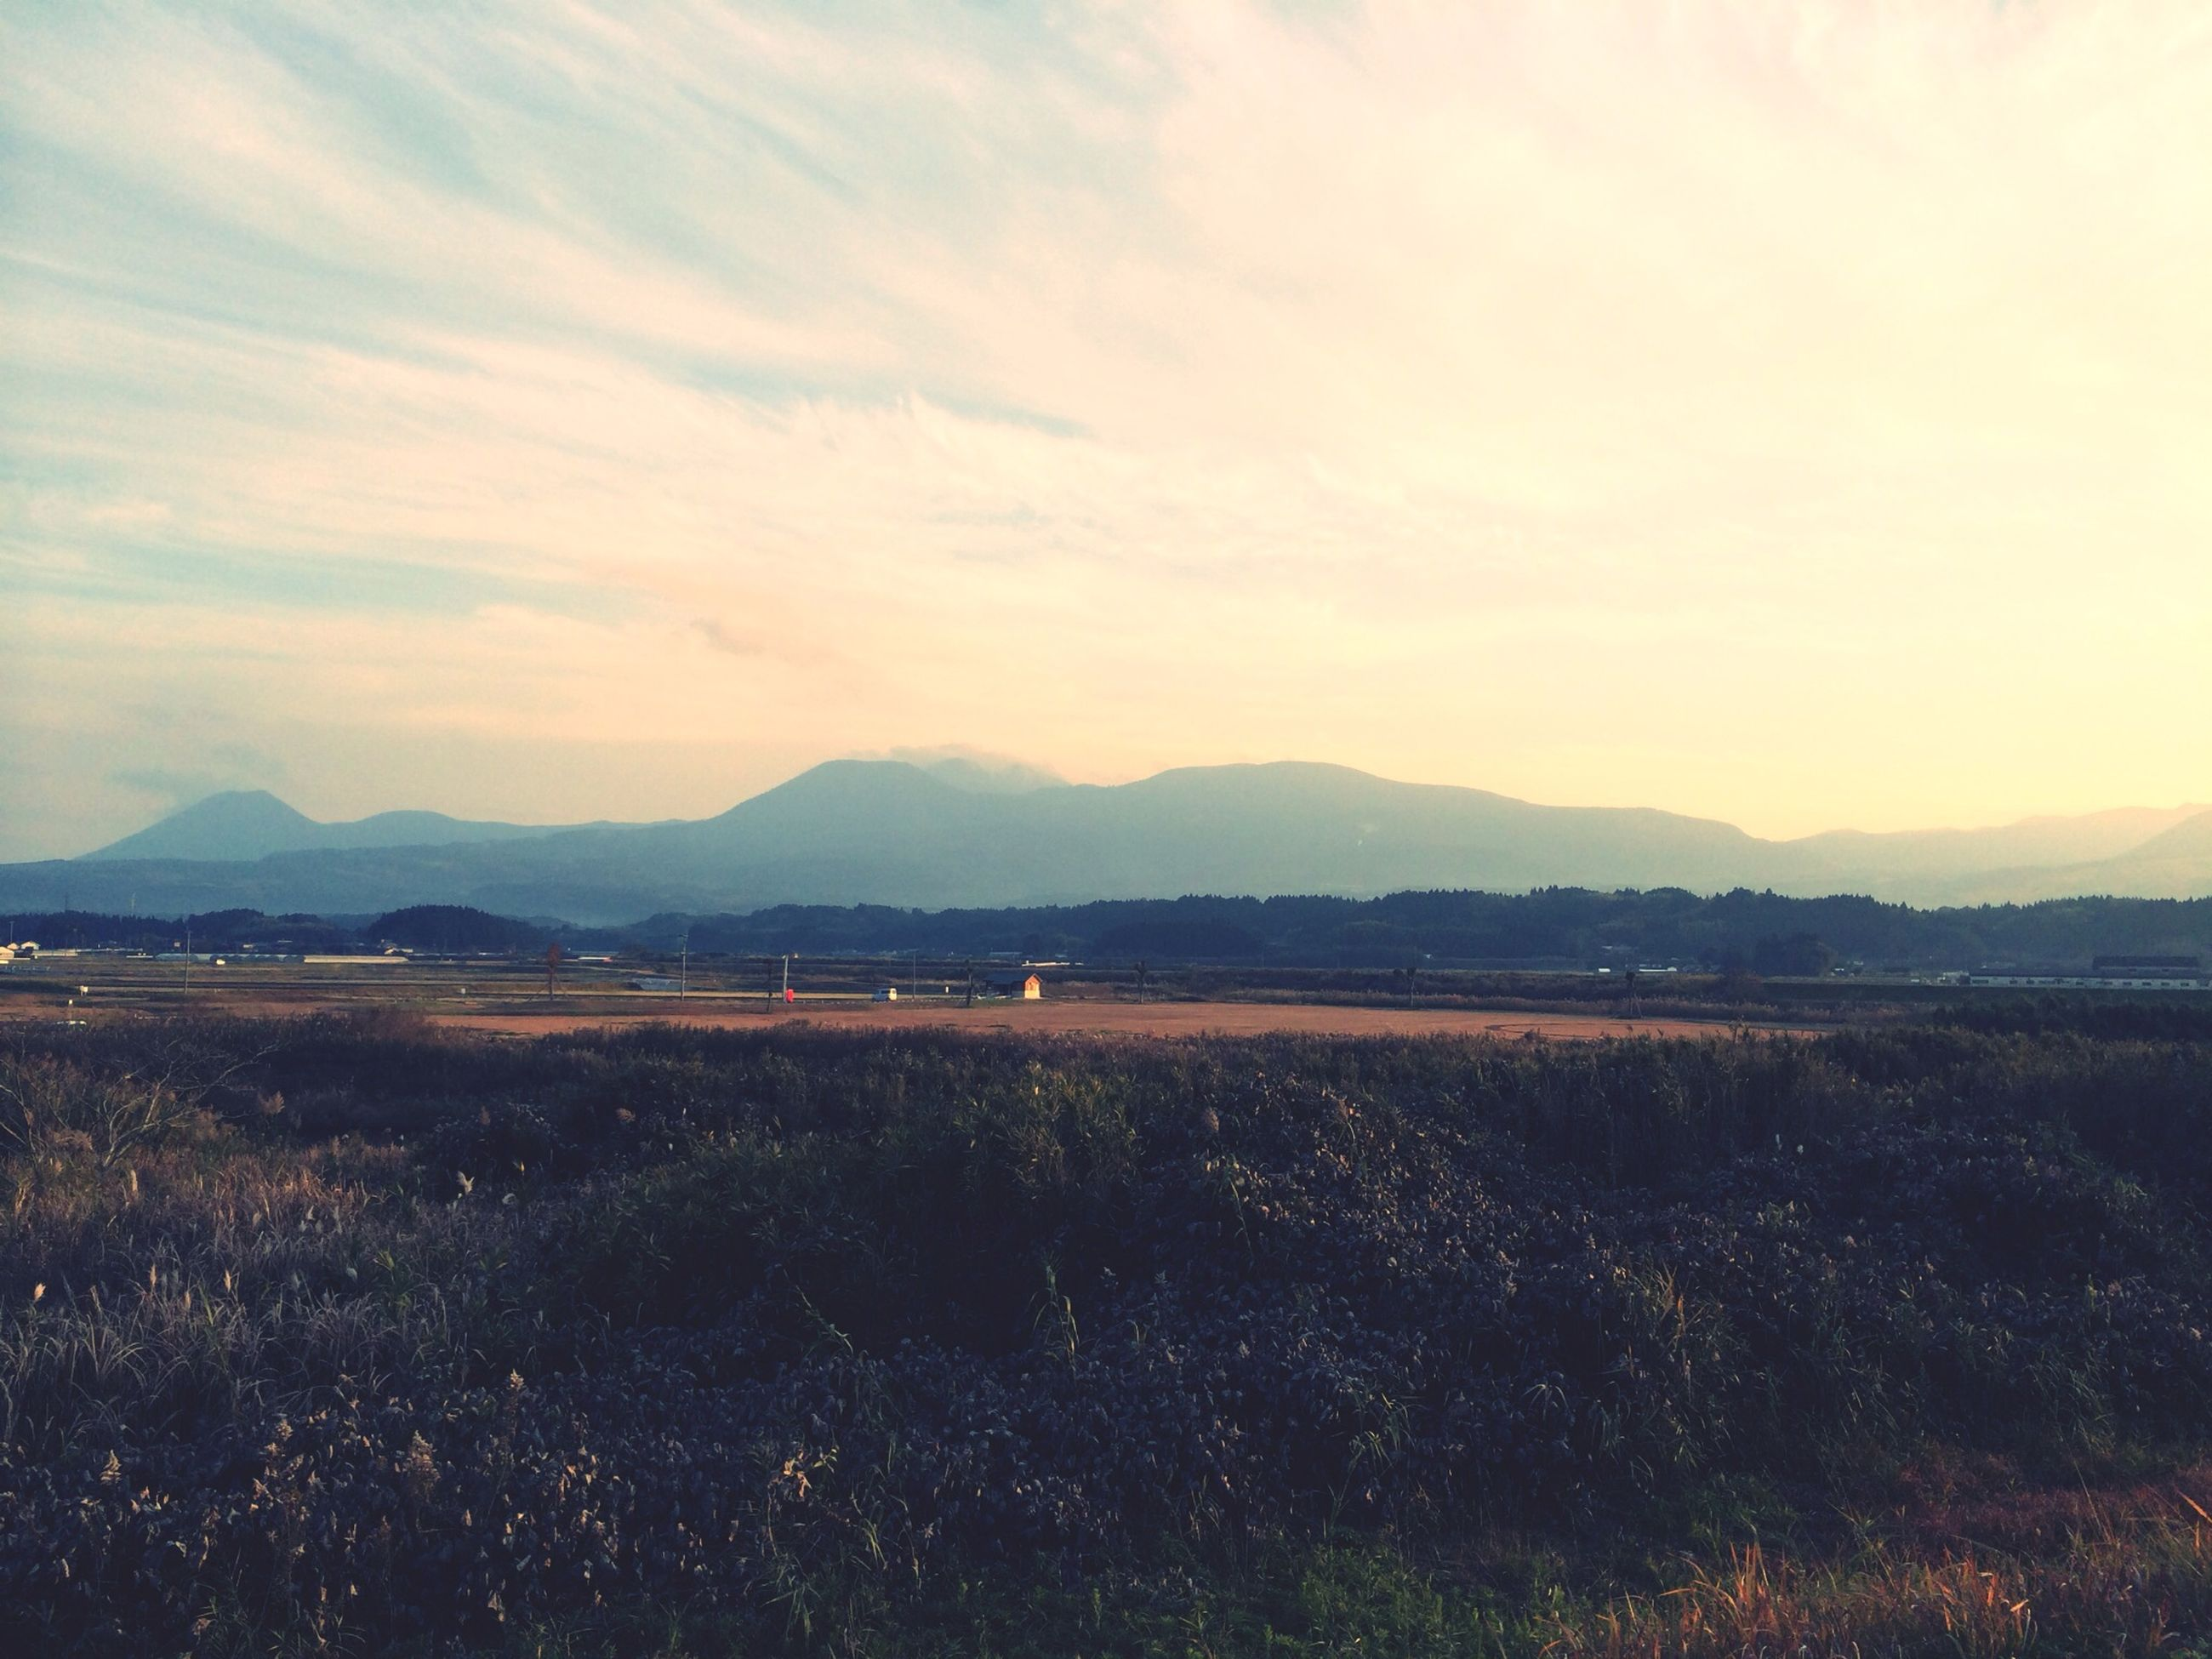 mountain, mountain range, landscape, tranquil scene, tranquility, scenics, sky, beauty in nature, nature, cloud - sky, non-urban scene, field, rural scene, idyllic, horizon over land, remote, outdoors, no people, sunset, cloud